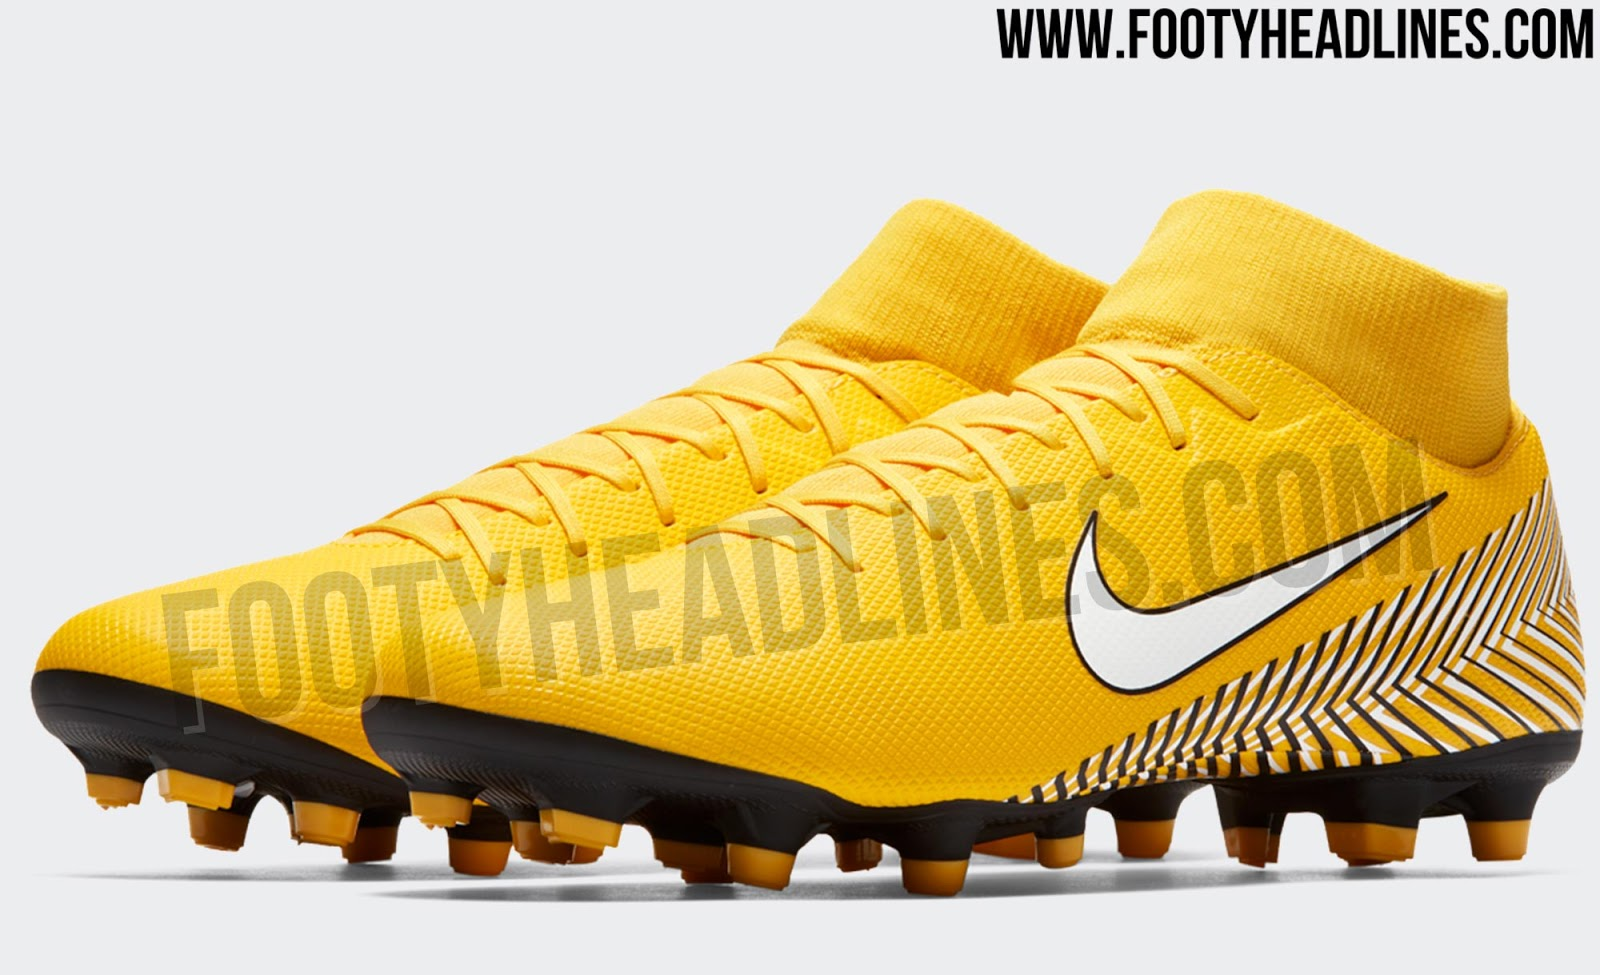 ... coupon code for update 2 confirming previous leaks a picture of the  photo shooting for the new style leaked in 2017 nike hypervenom phantom ii neymar  x ... b7923ac6c2528